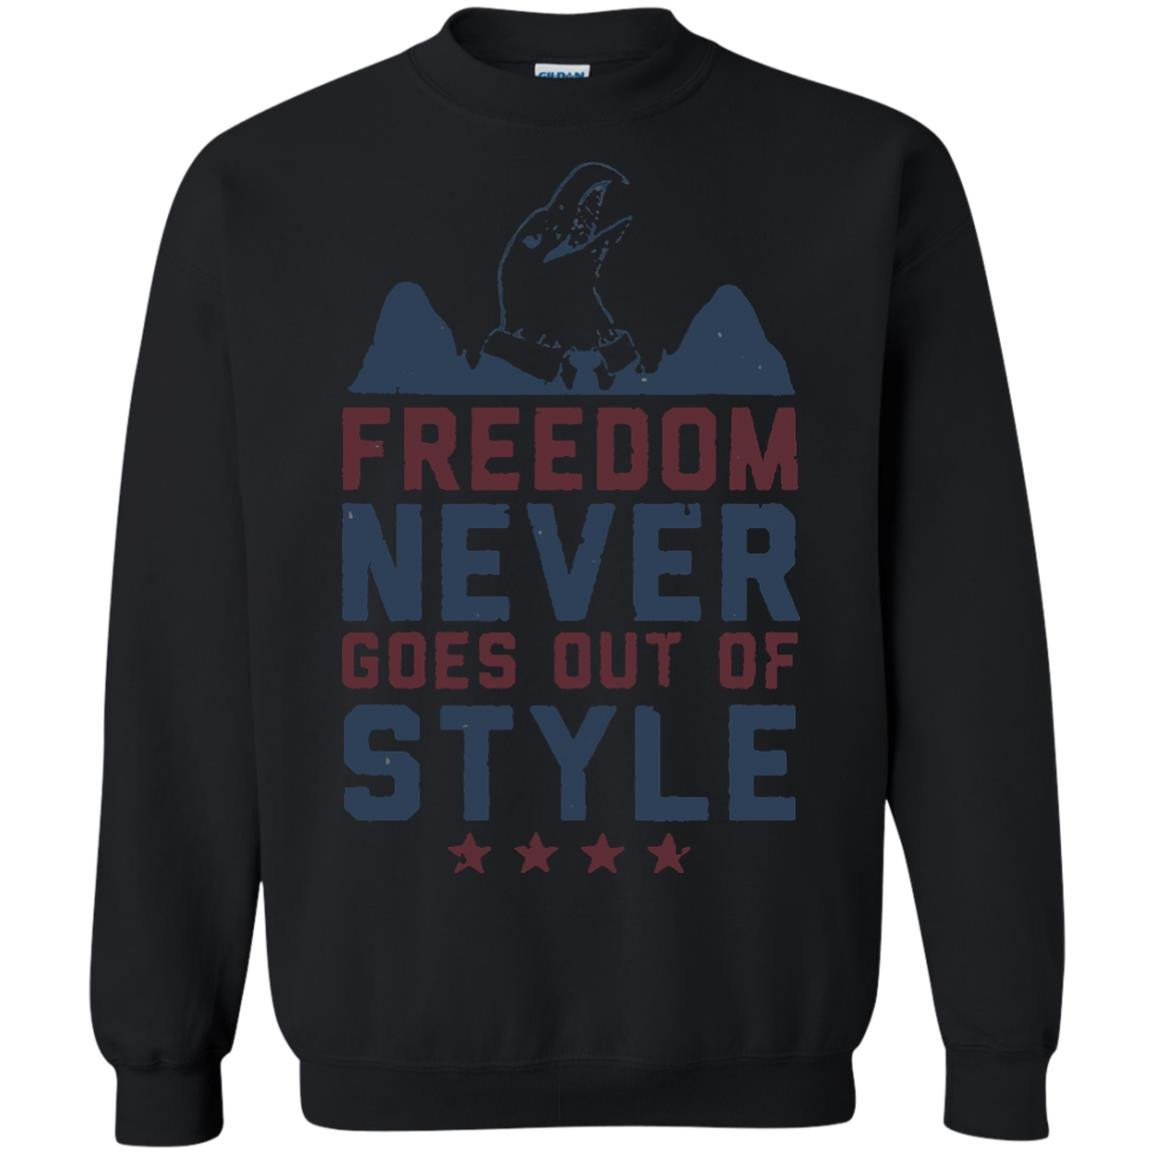 America Shirts FREEDOM NEVER GOES OUT OF STYLE T-shirts Hoodies Sweatshirts